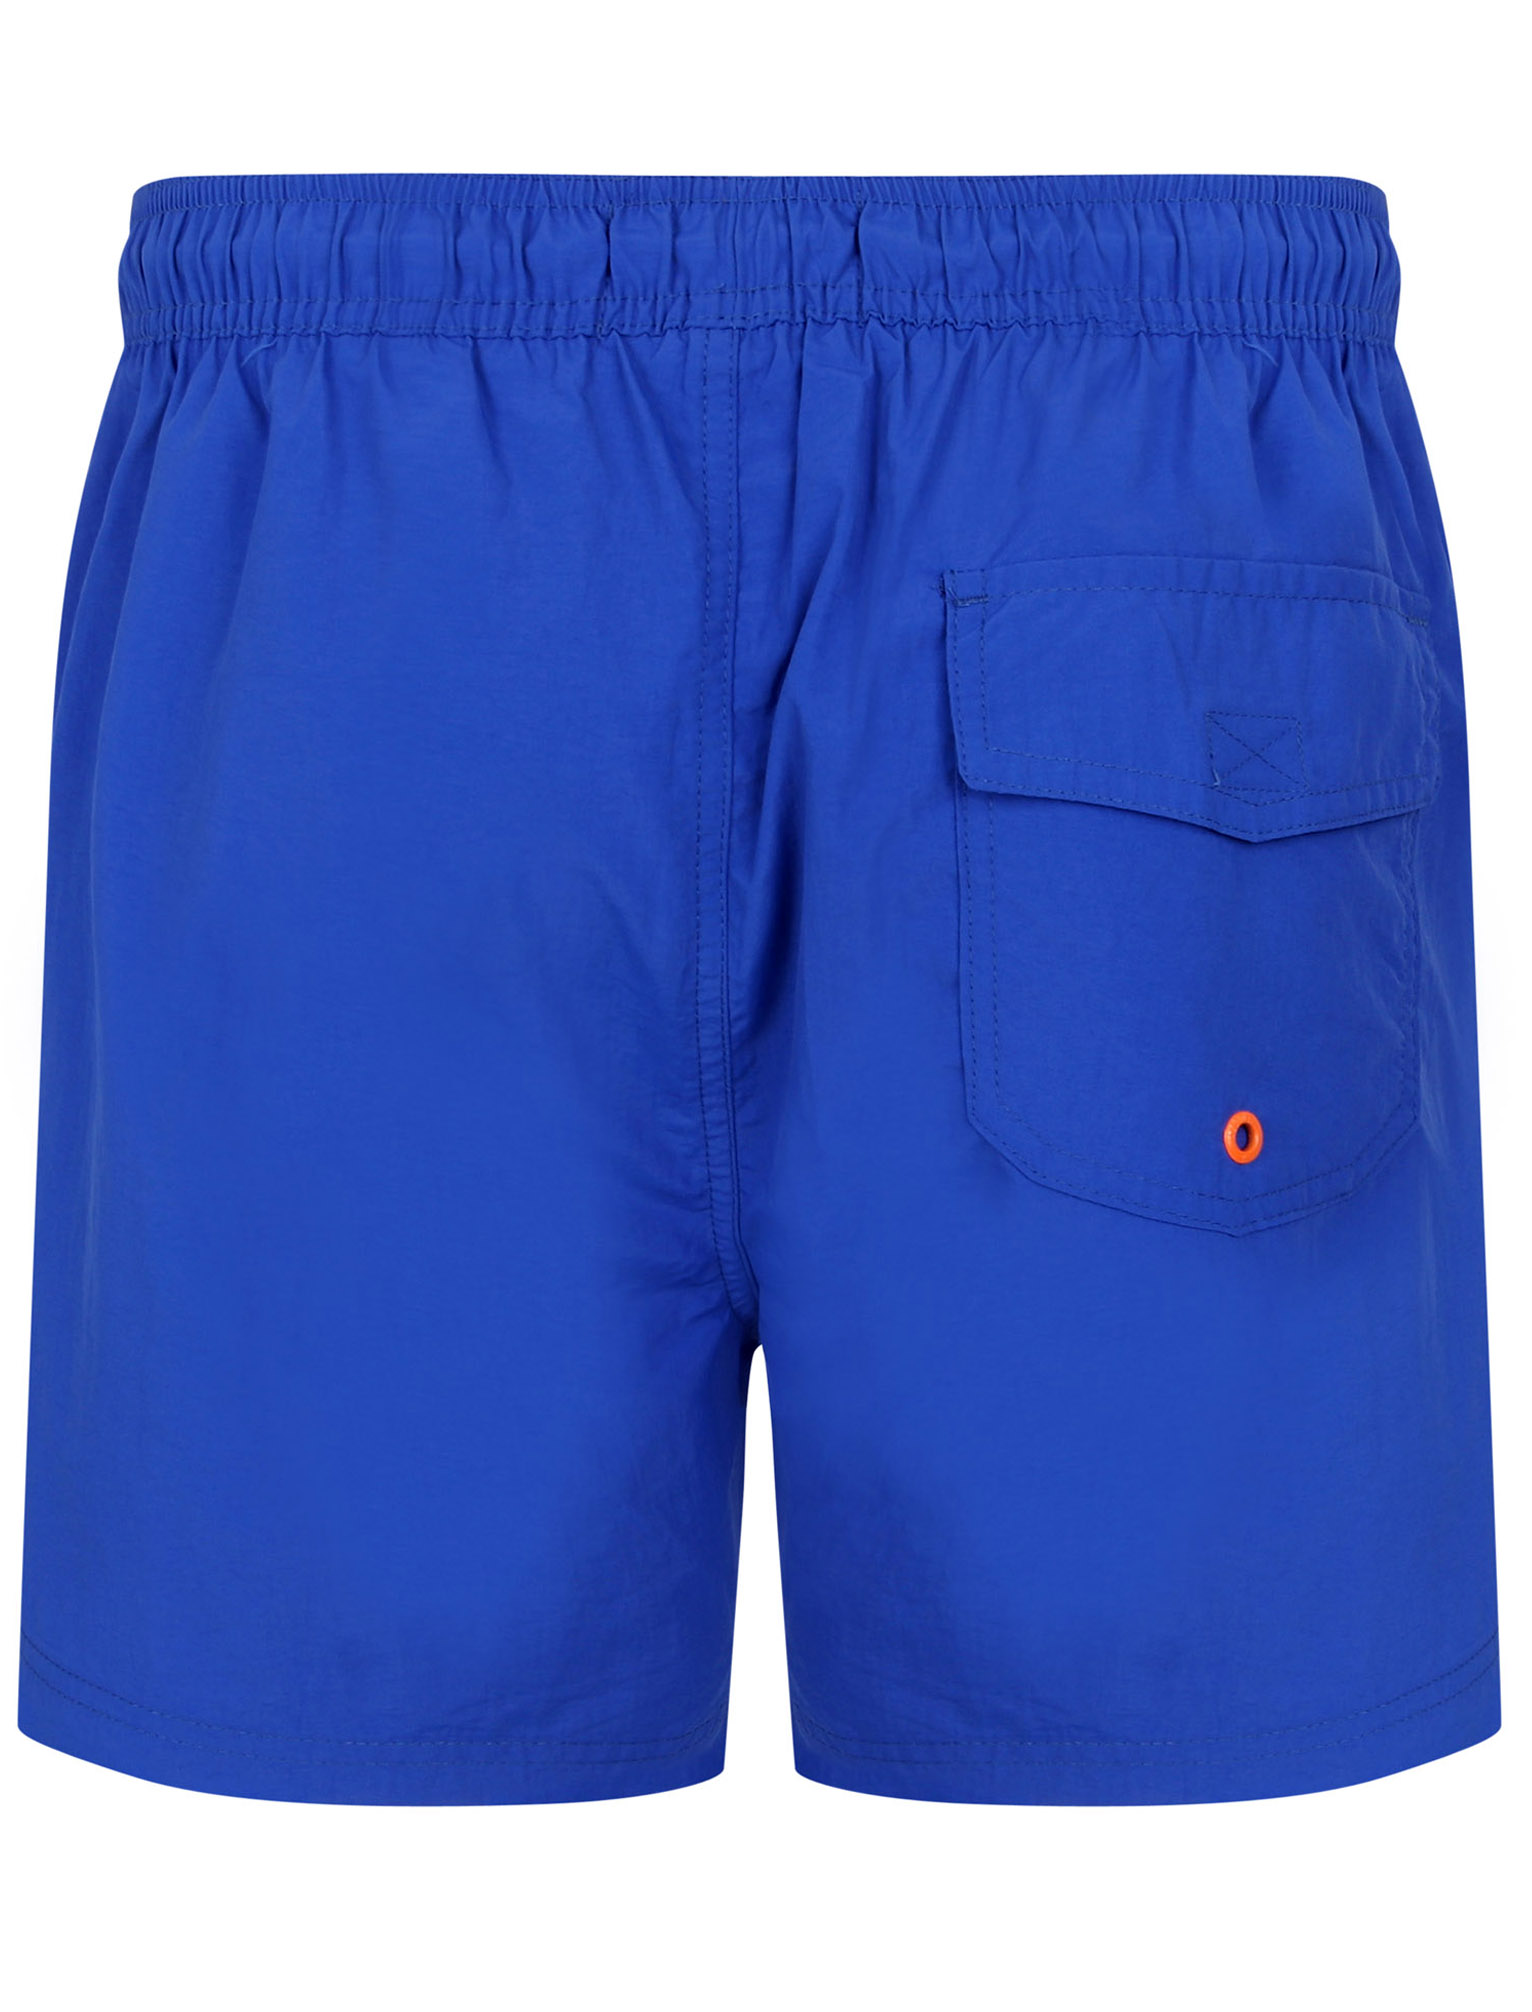 New-Mens-Tokyo-Laundry-Branded-Classic-Soft-Swim-Shorts-With-Pockets-Size-S-XXL thumbnail 16